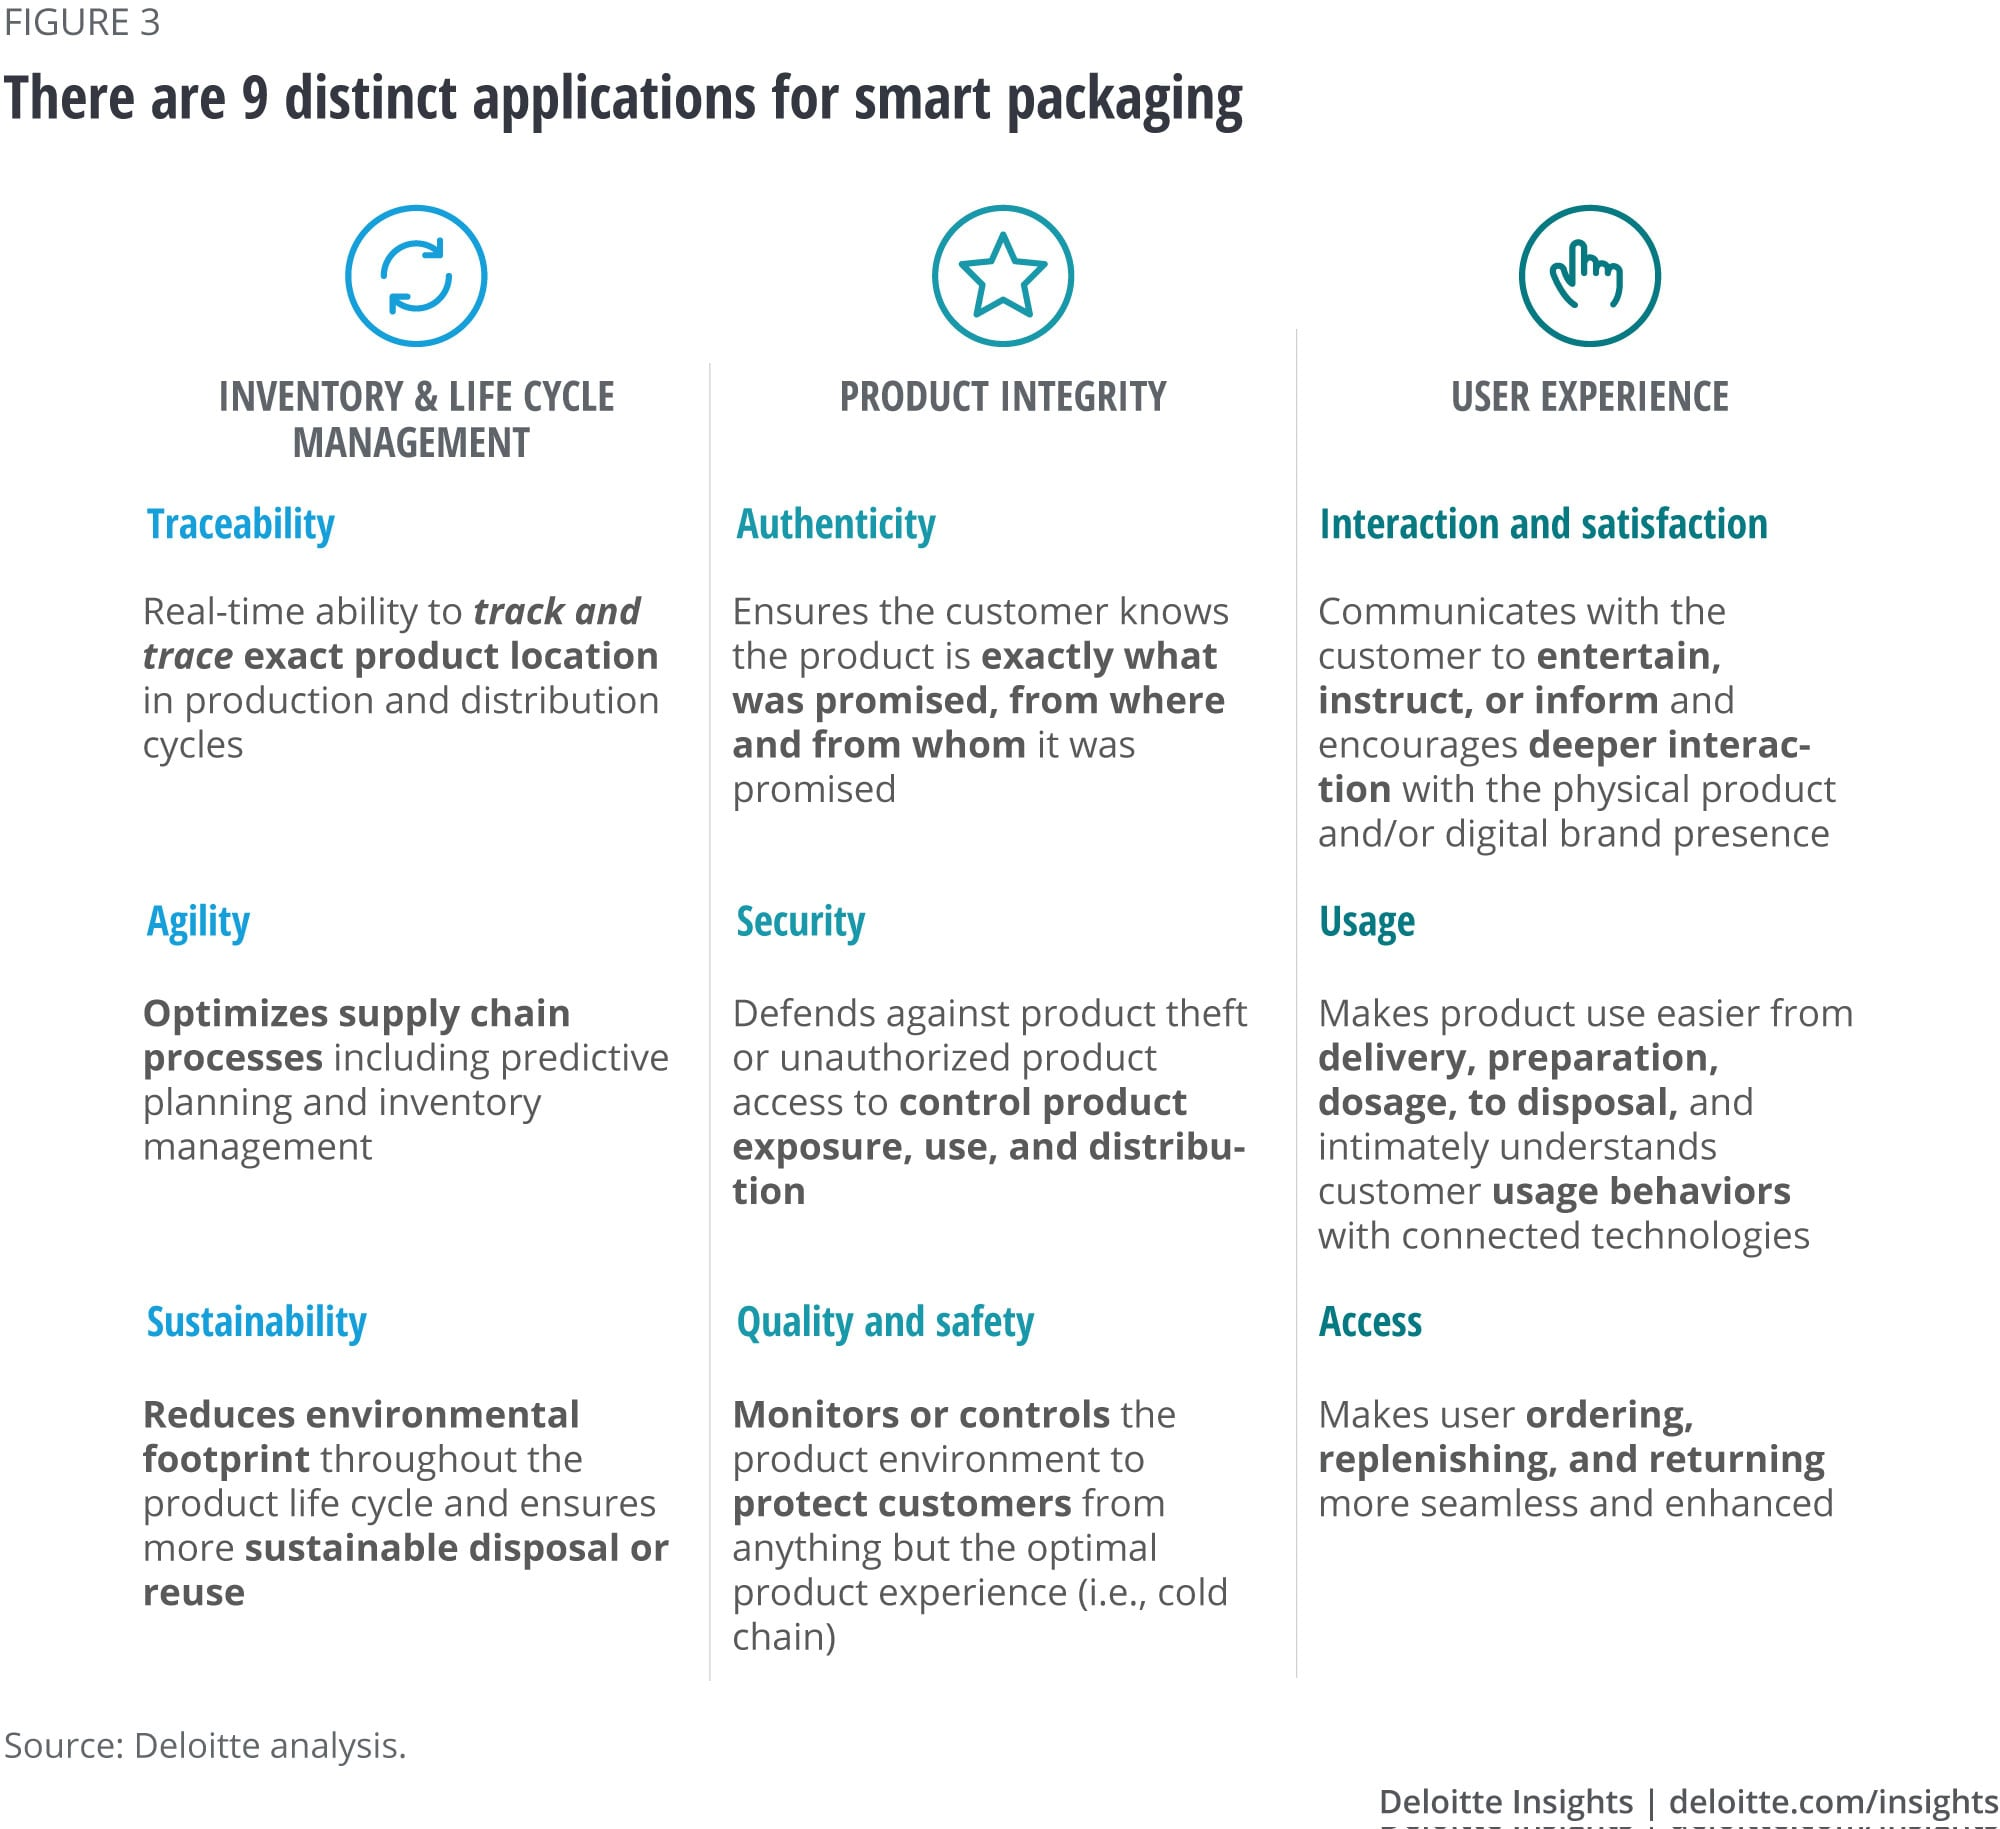 There are 9 distinct applications for smart packaging